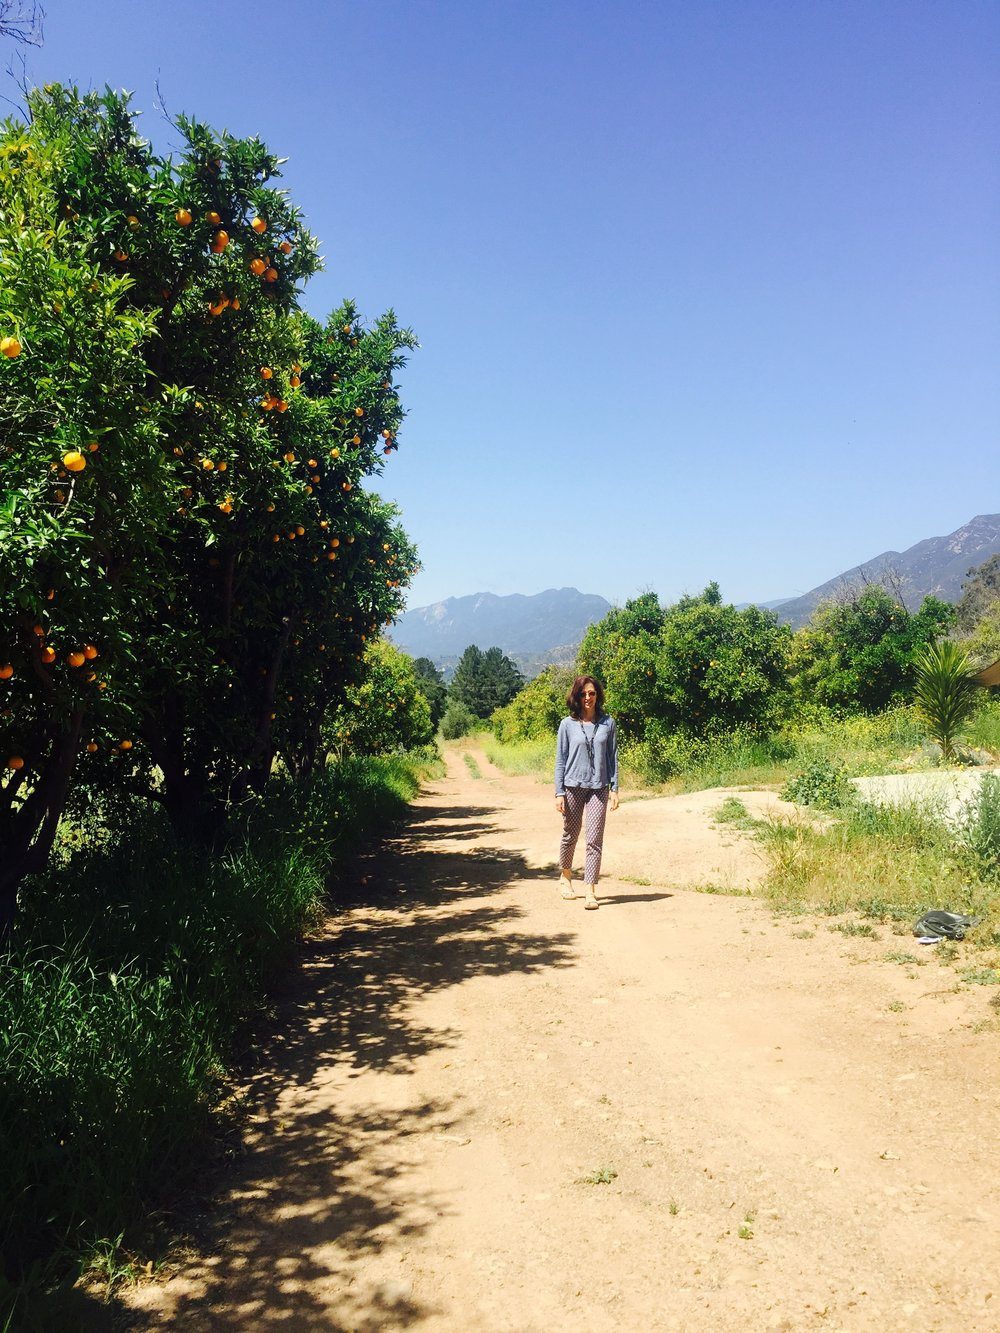 COME AND JOIN ME IN OJAI SEPTEMBER 16-17 art retreat with meditation and optional hiking